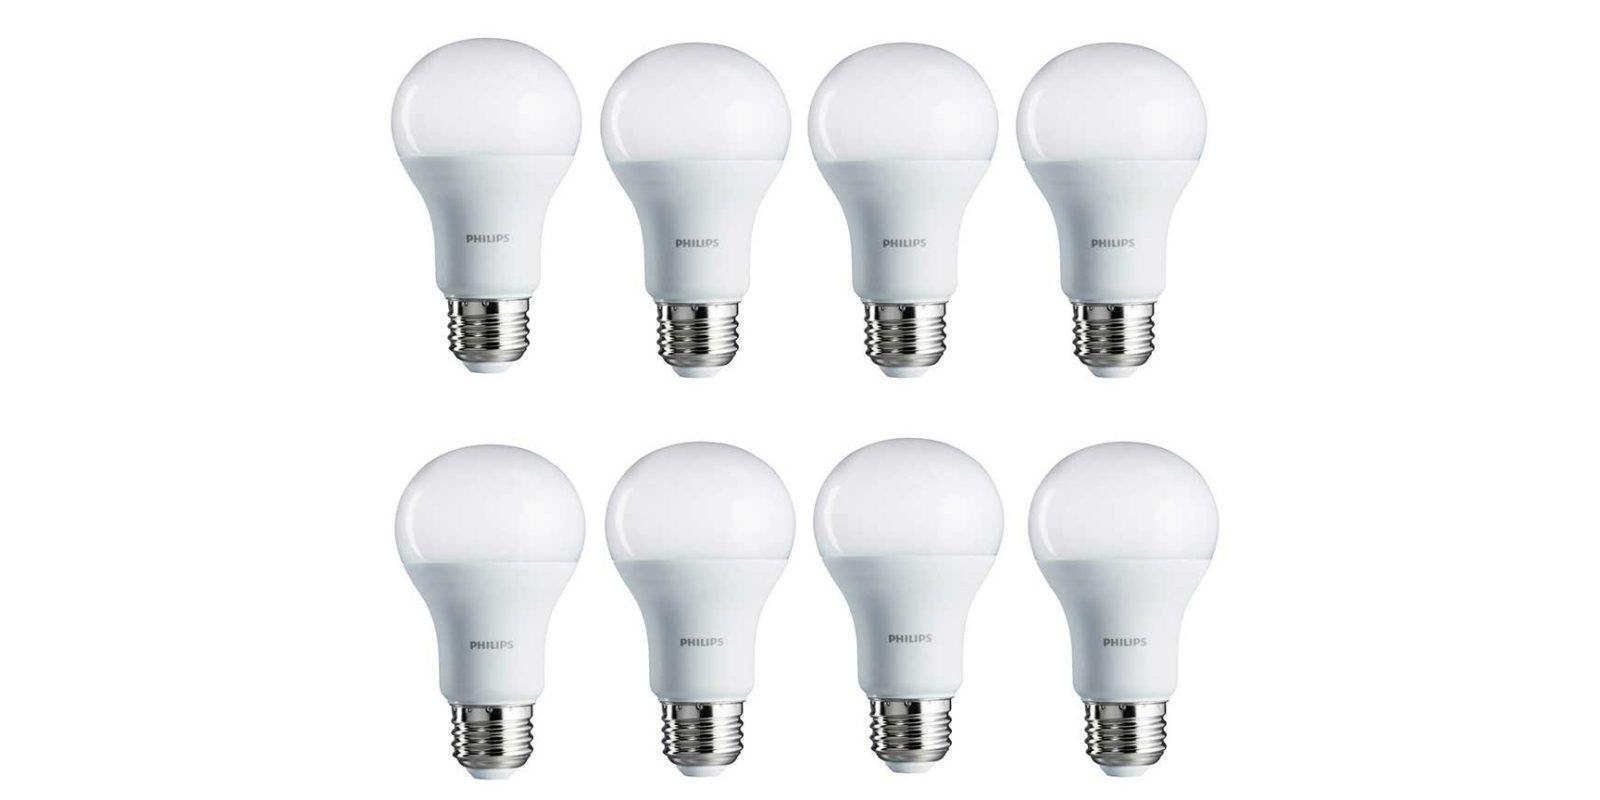 Green Deals: 8-pack Philips 100W LED A19 Light Bulbs $30, more ...